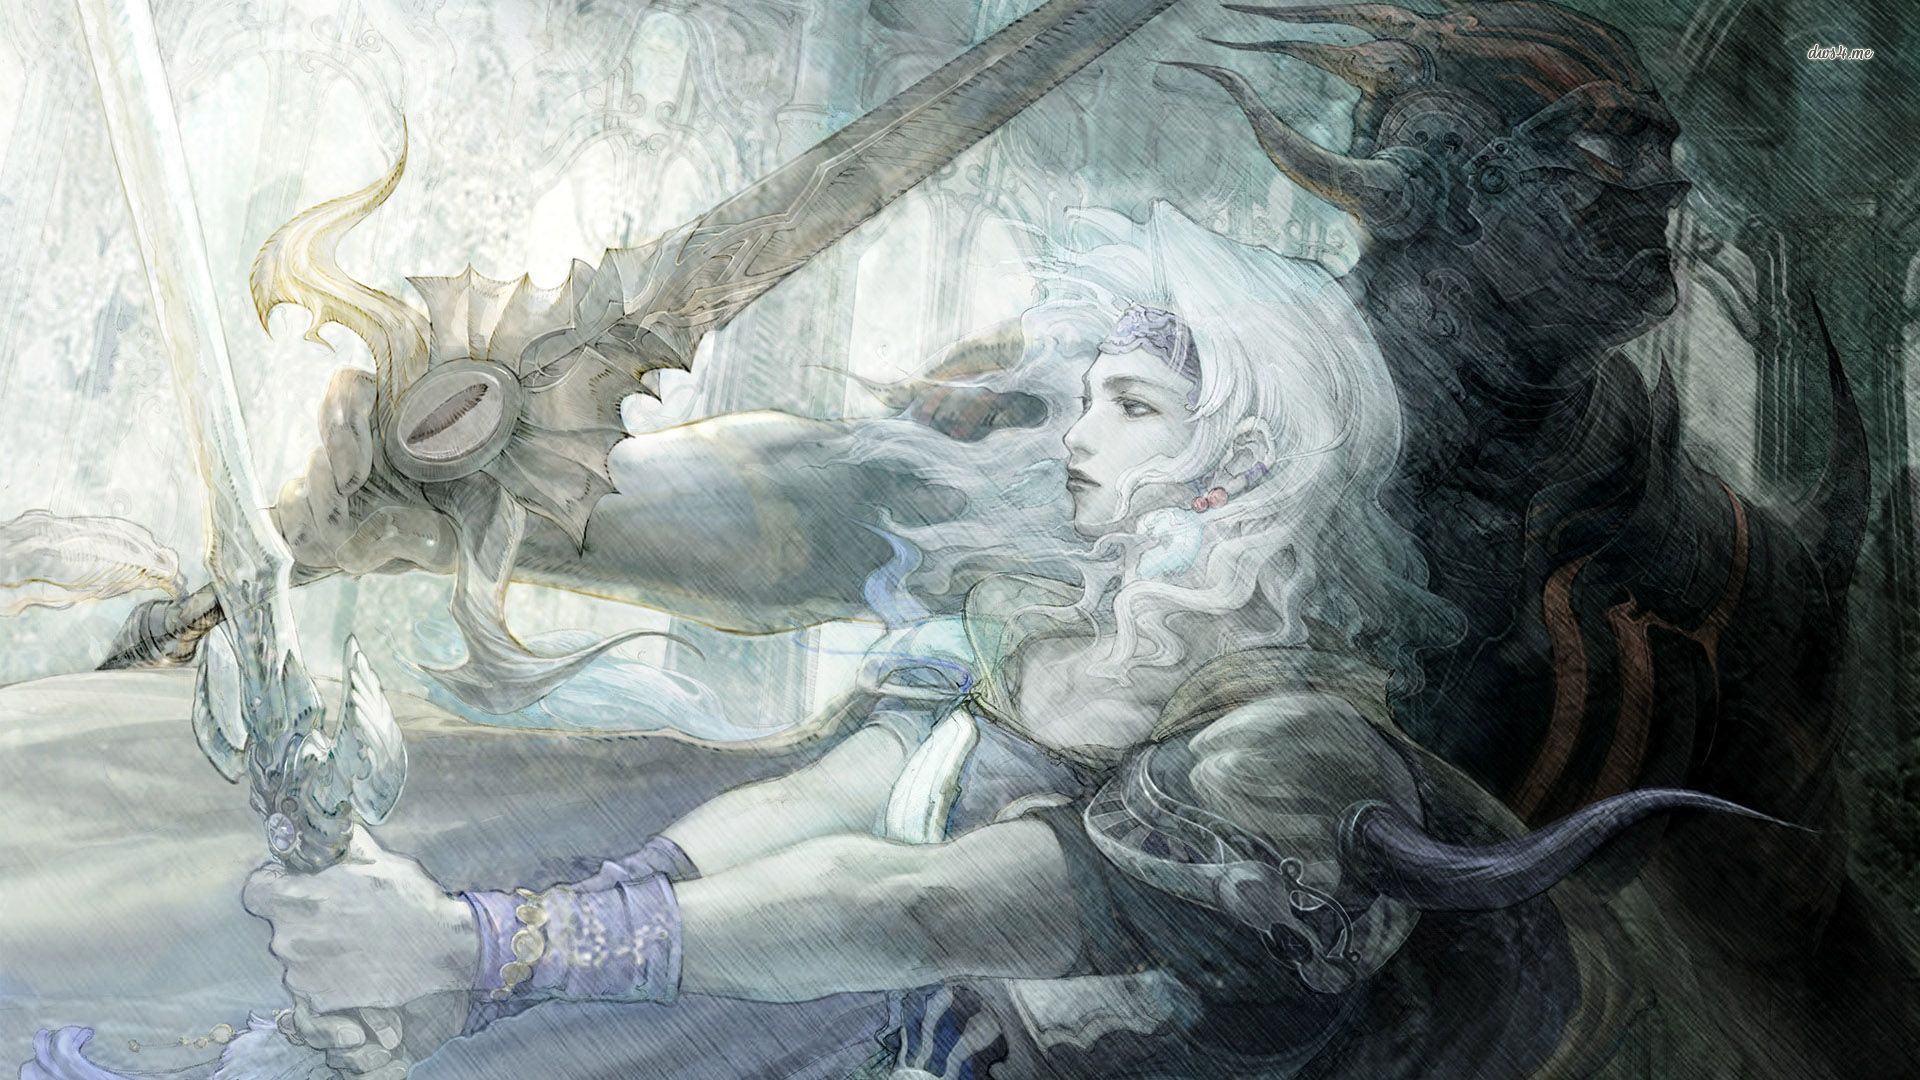 Final Fantasy IV Wallpapers - Wallpaper Cave